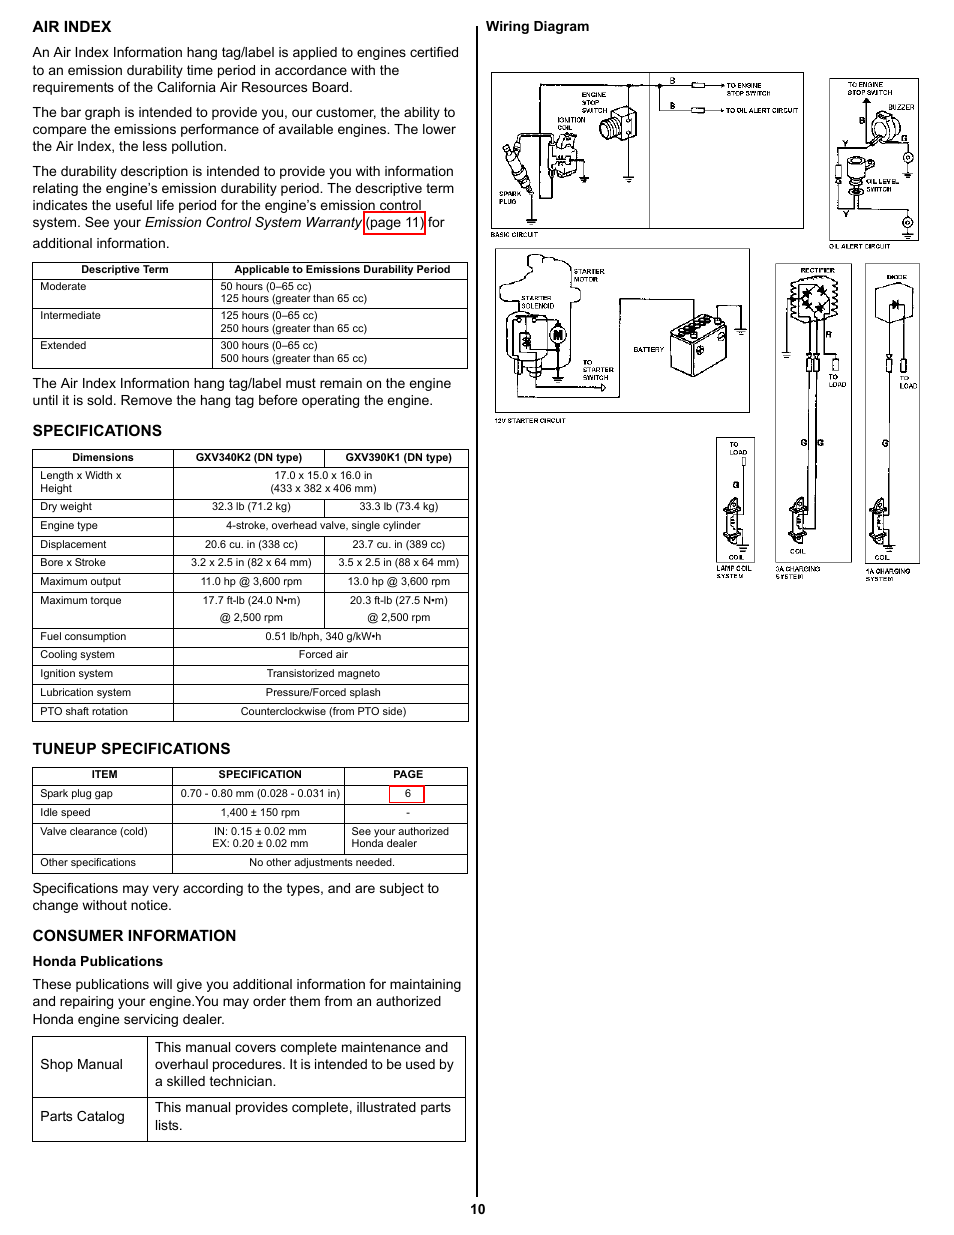 air index, specifications, tuneup specifications | honda gxv390 user manual  | page 10 / 16